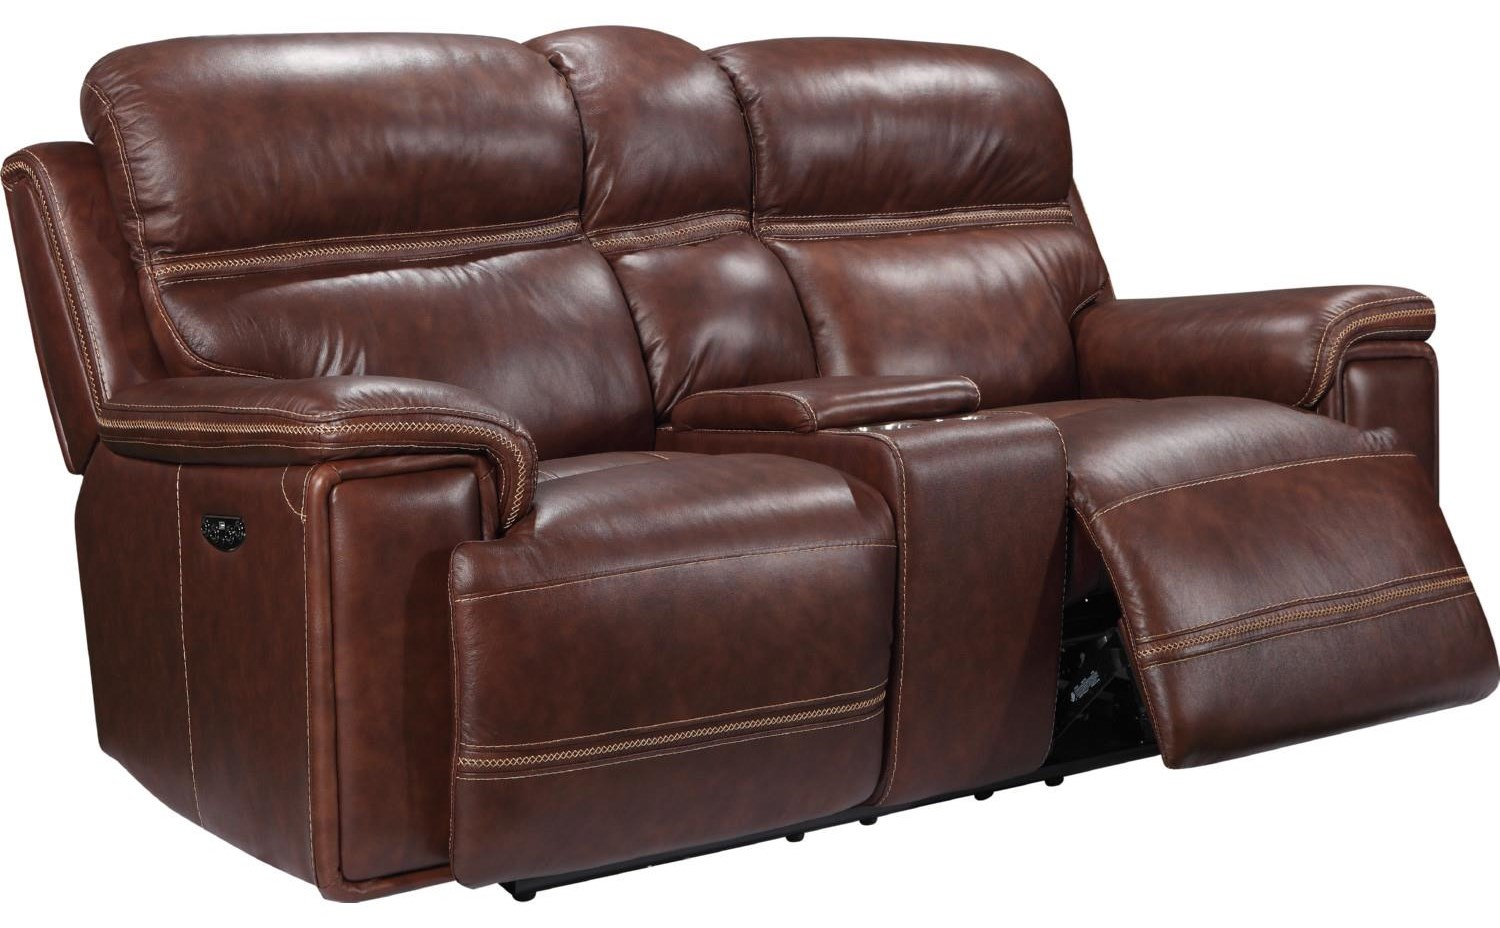 EH2394-02 Leather by Benini Leather at Bennett's Furniture and Mattresses